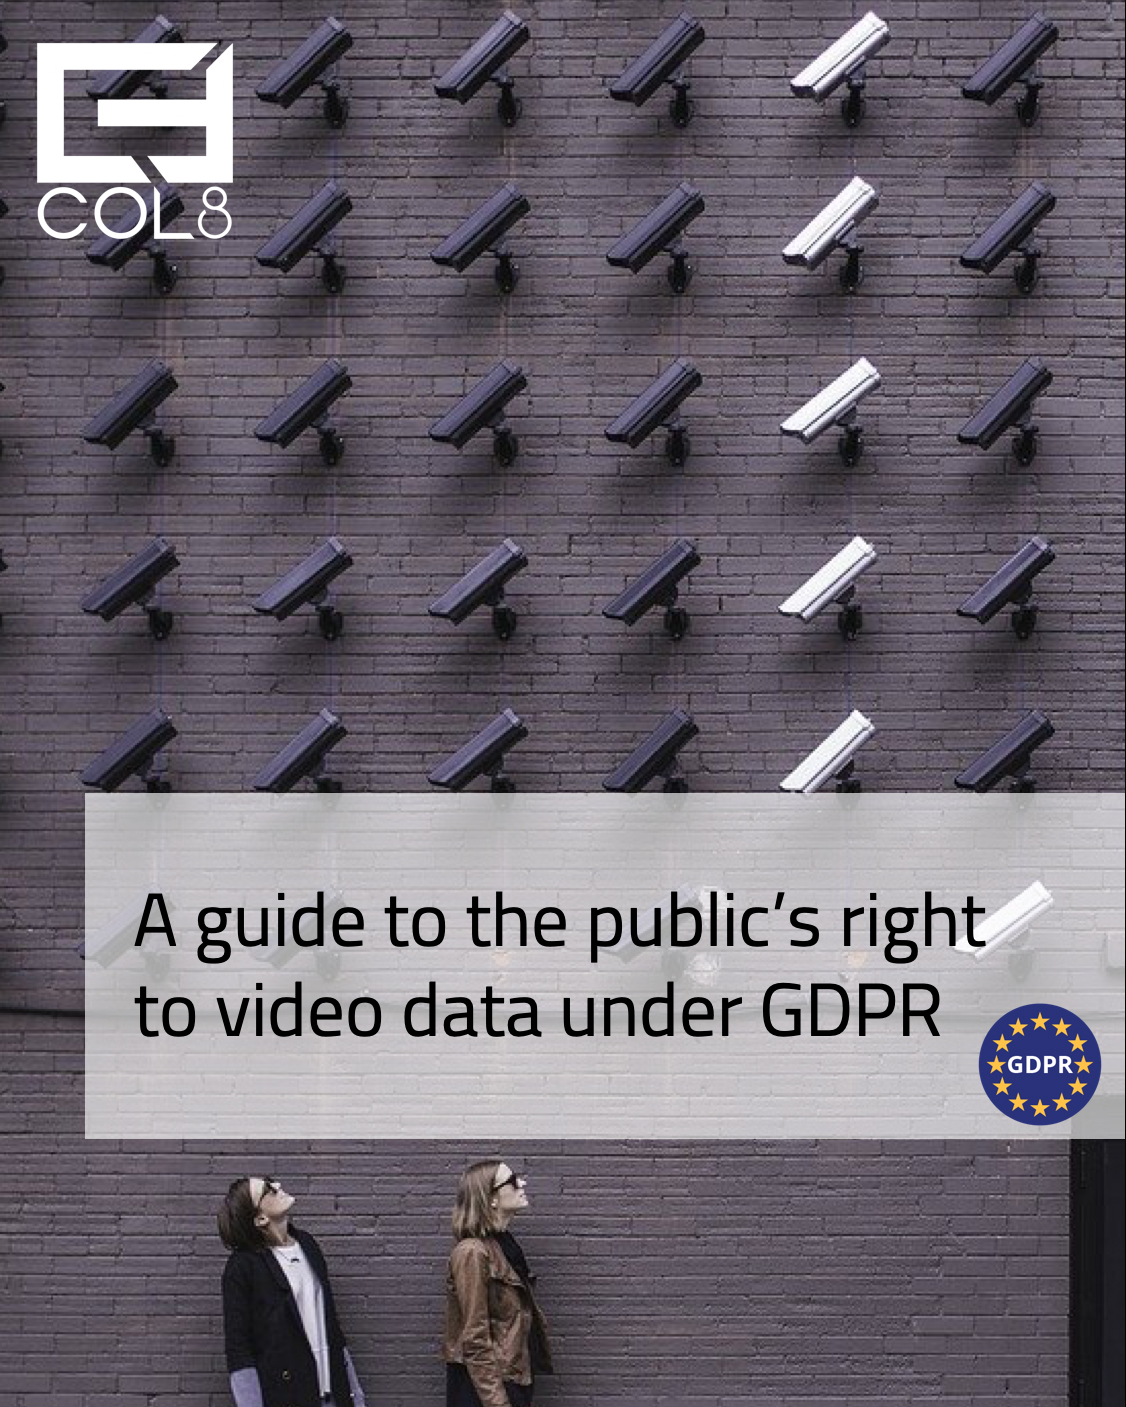 Video and the rights of the public guide cover